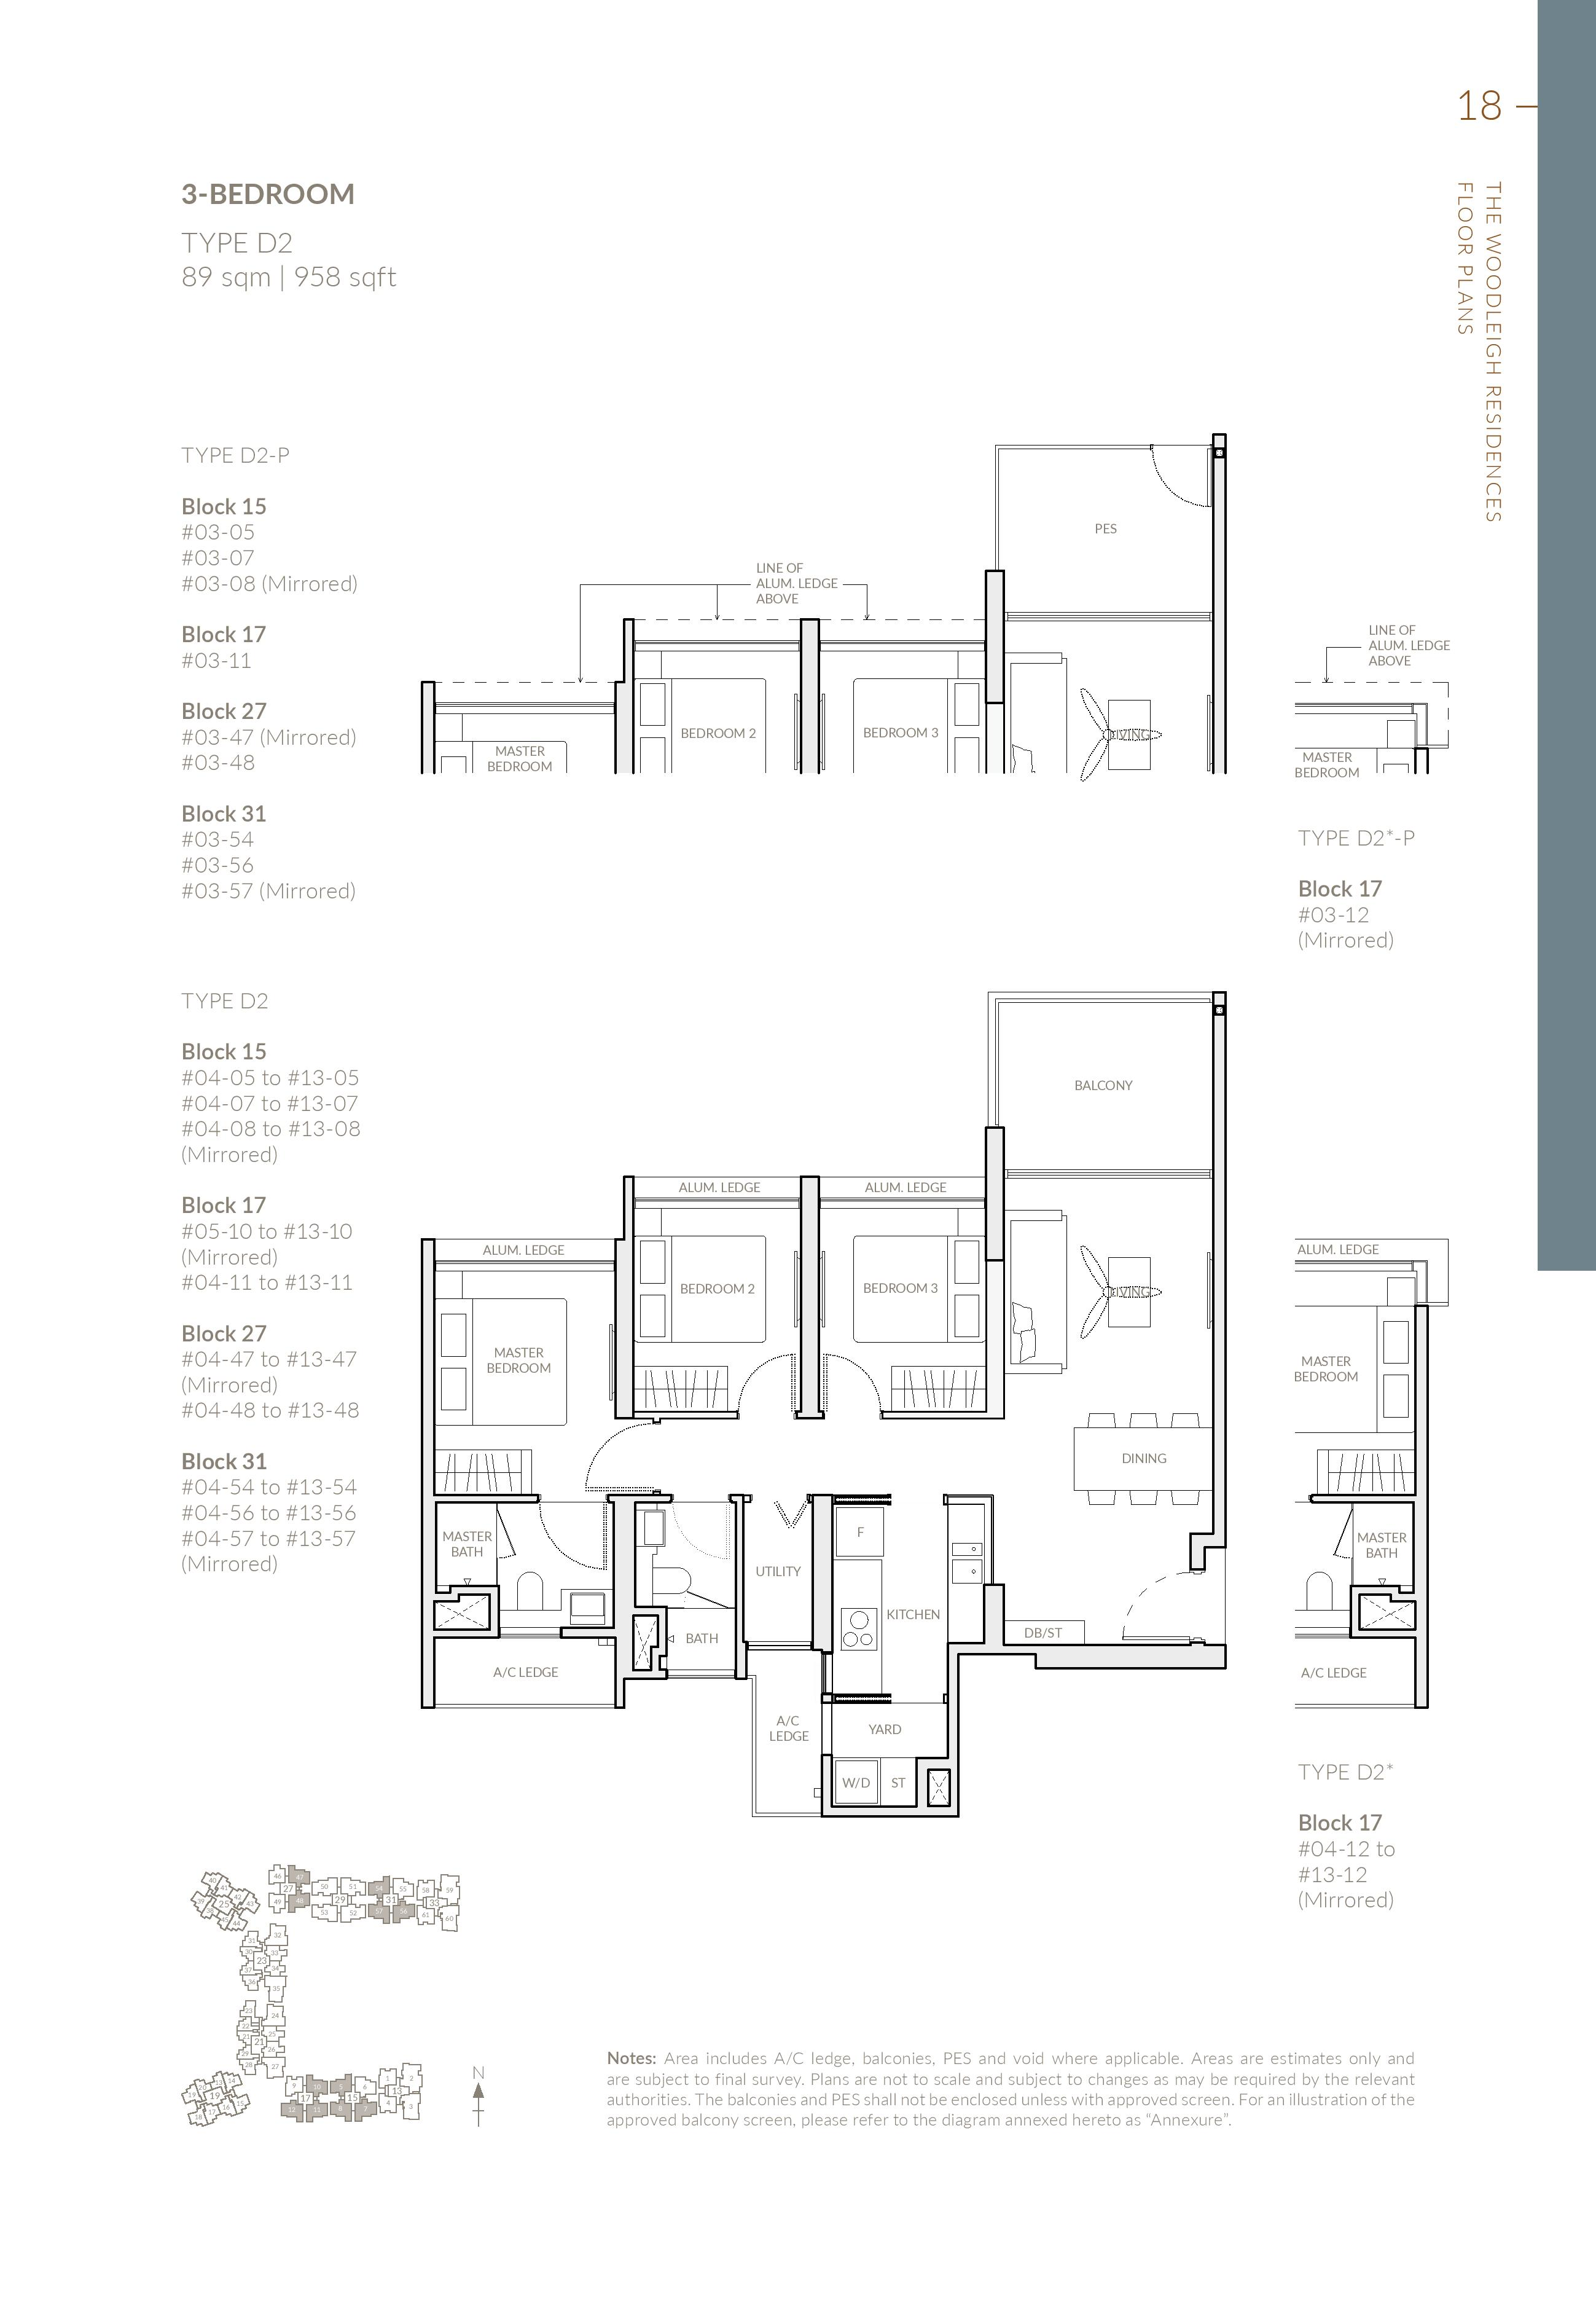 3 Bedroom The Woodleigh Residences